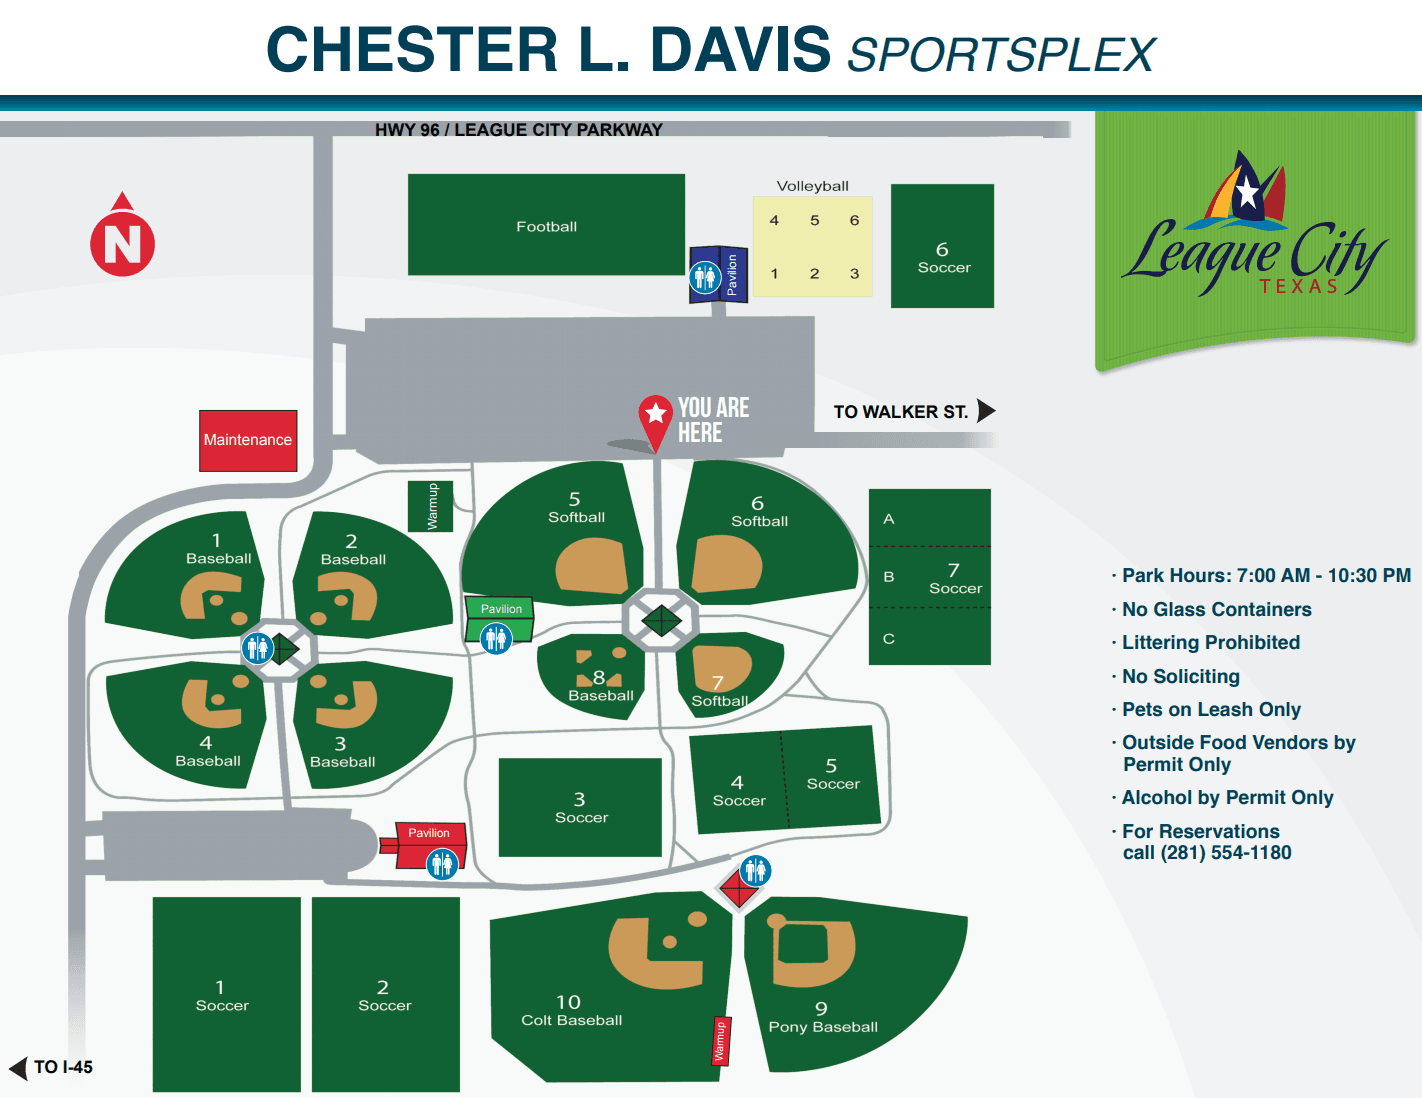 Chester L. Davis Sportsplex Map